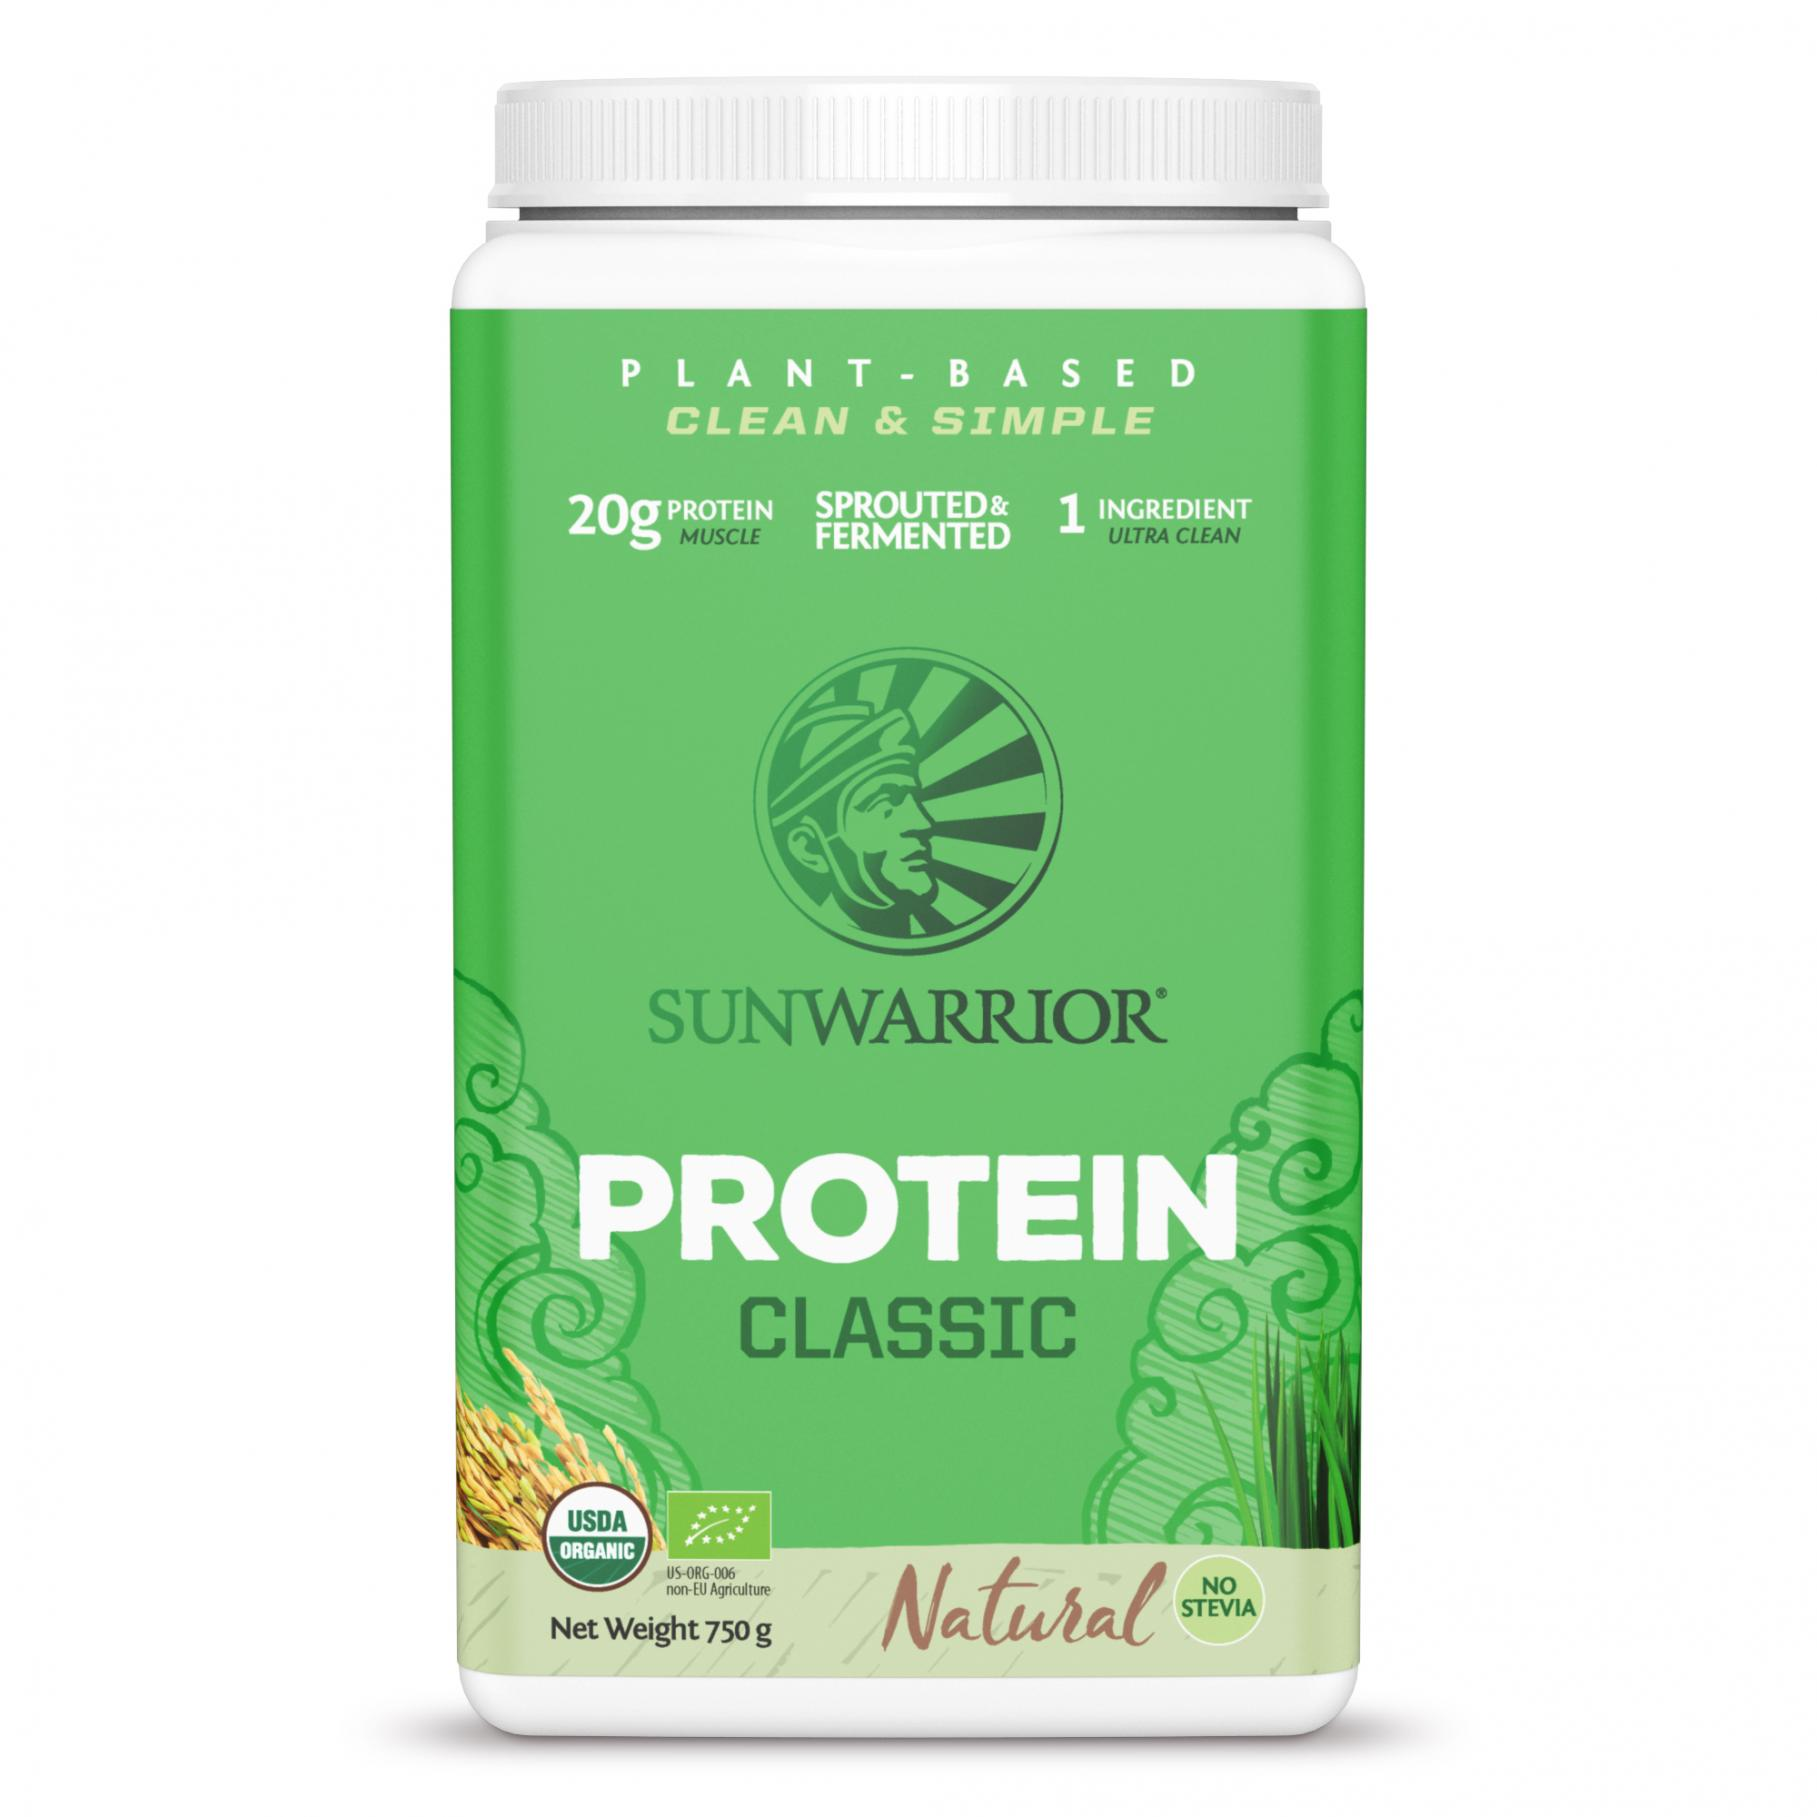 Protein Classic Natural 750g (Green Tub) (Currently Unavailable)